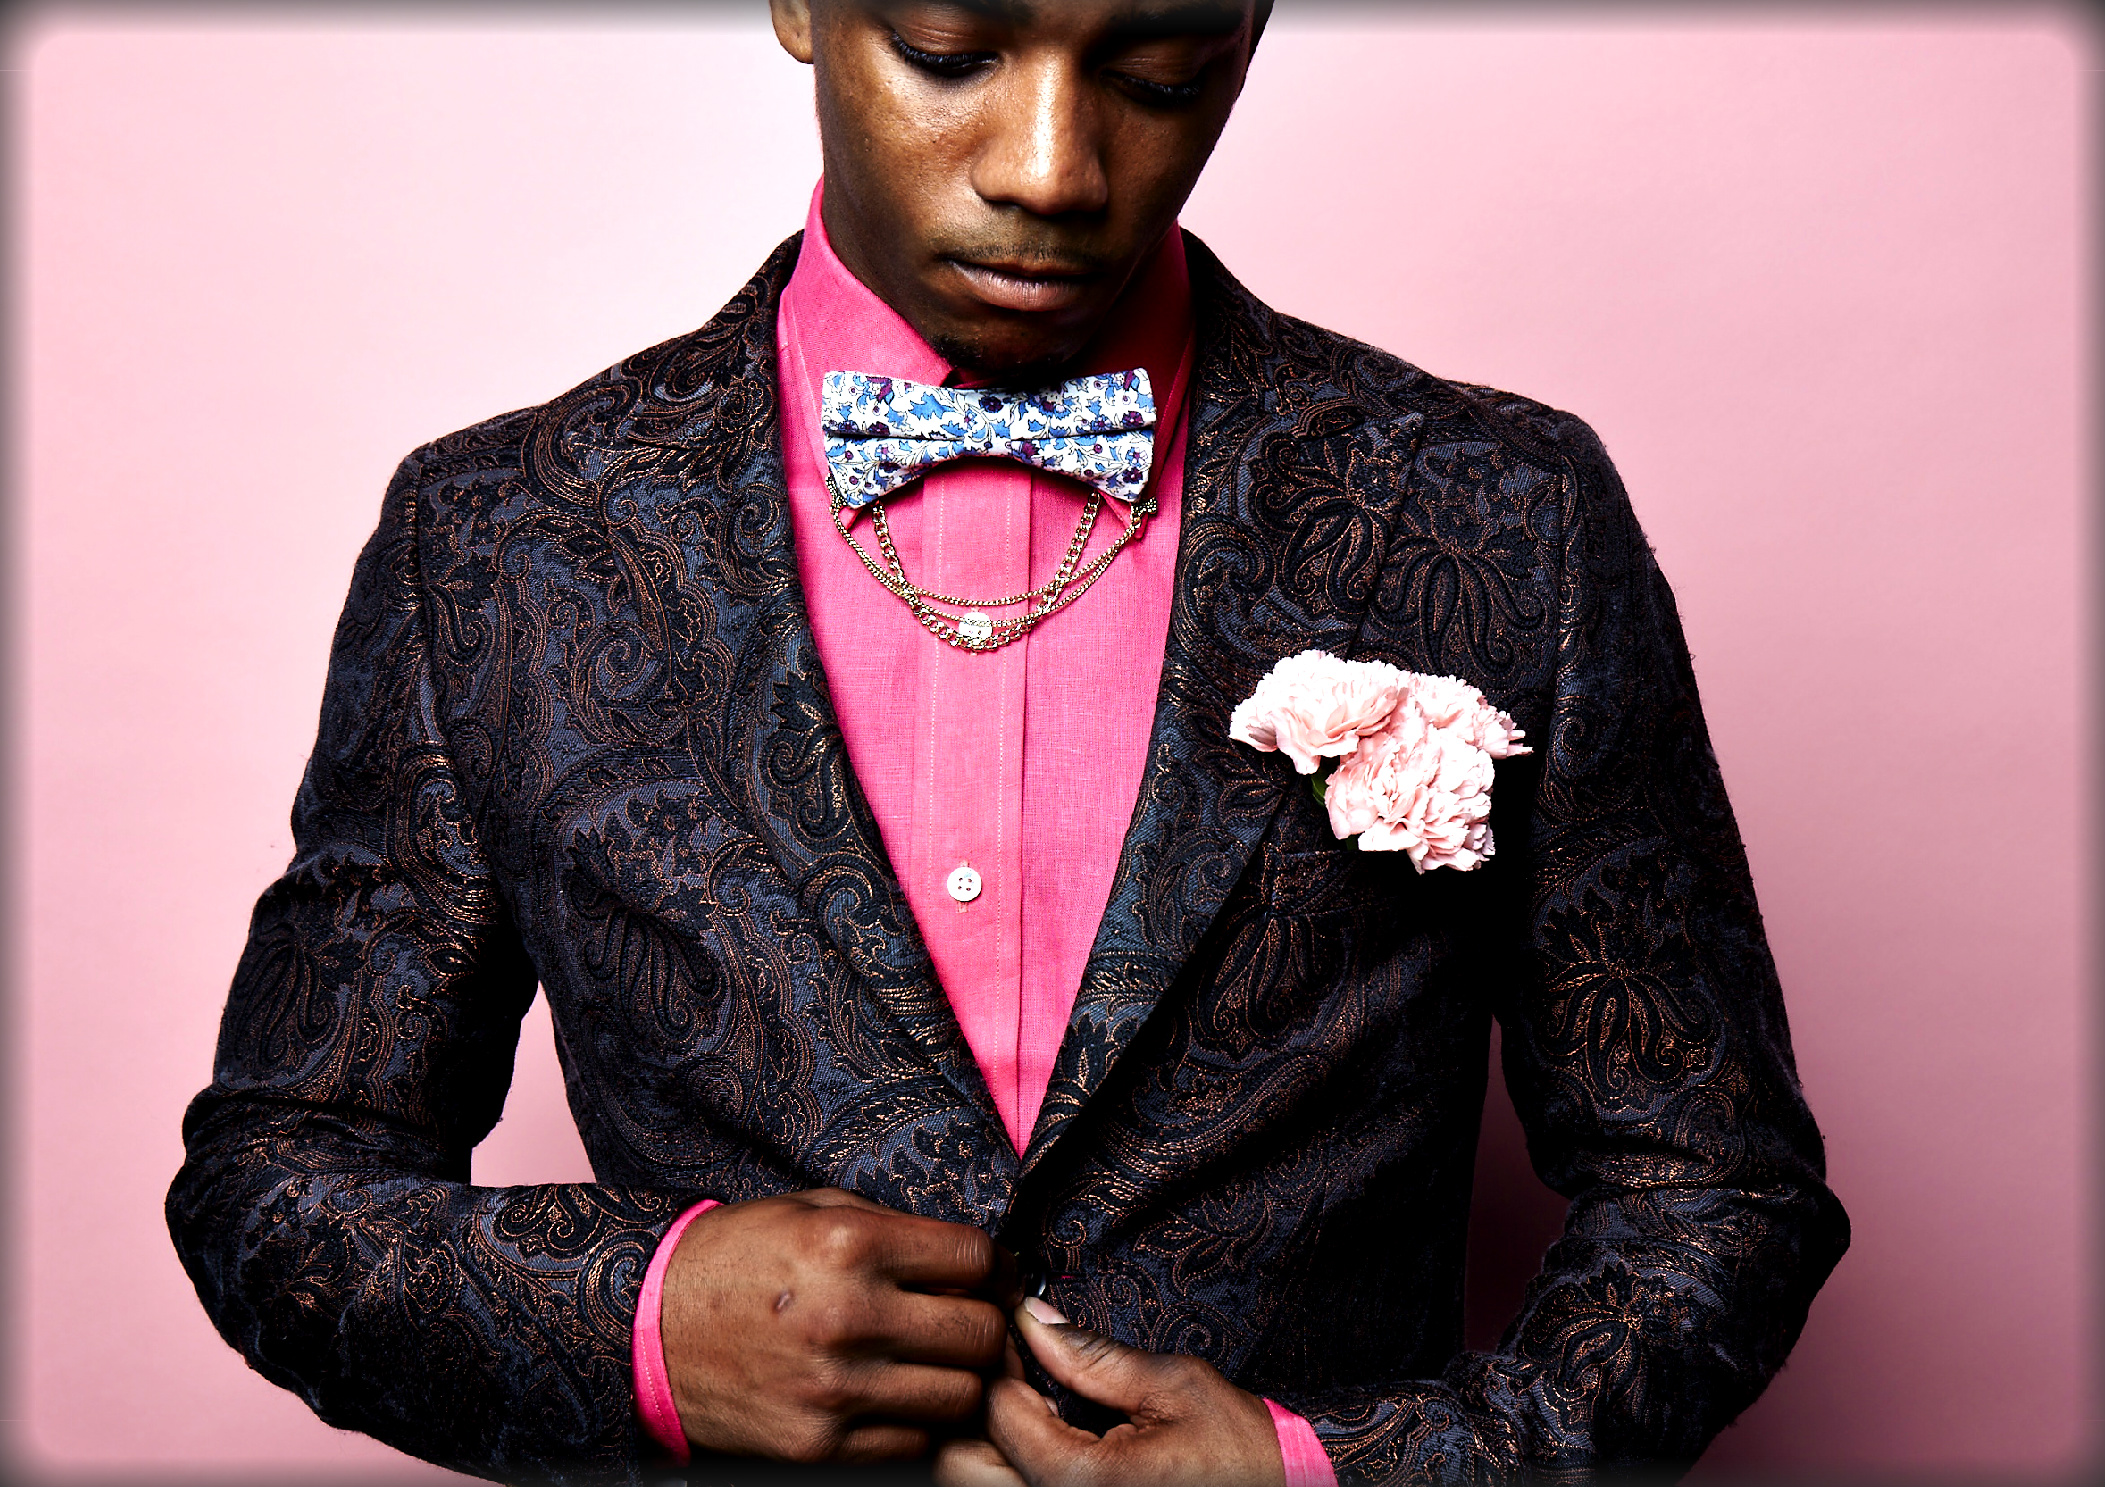 Fashion model with a pink shirt and creative bow tie